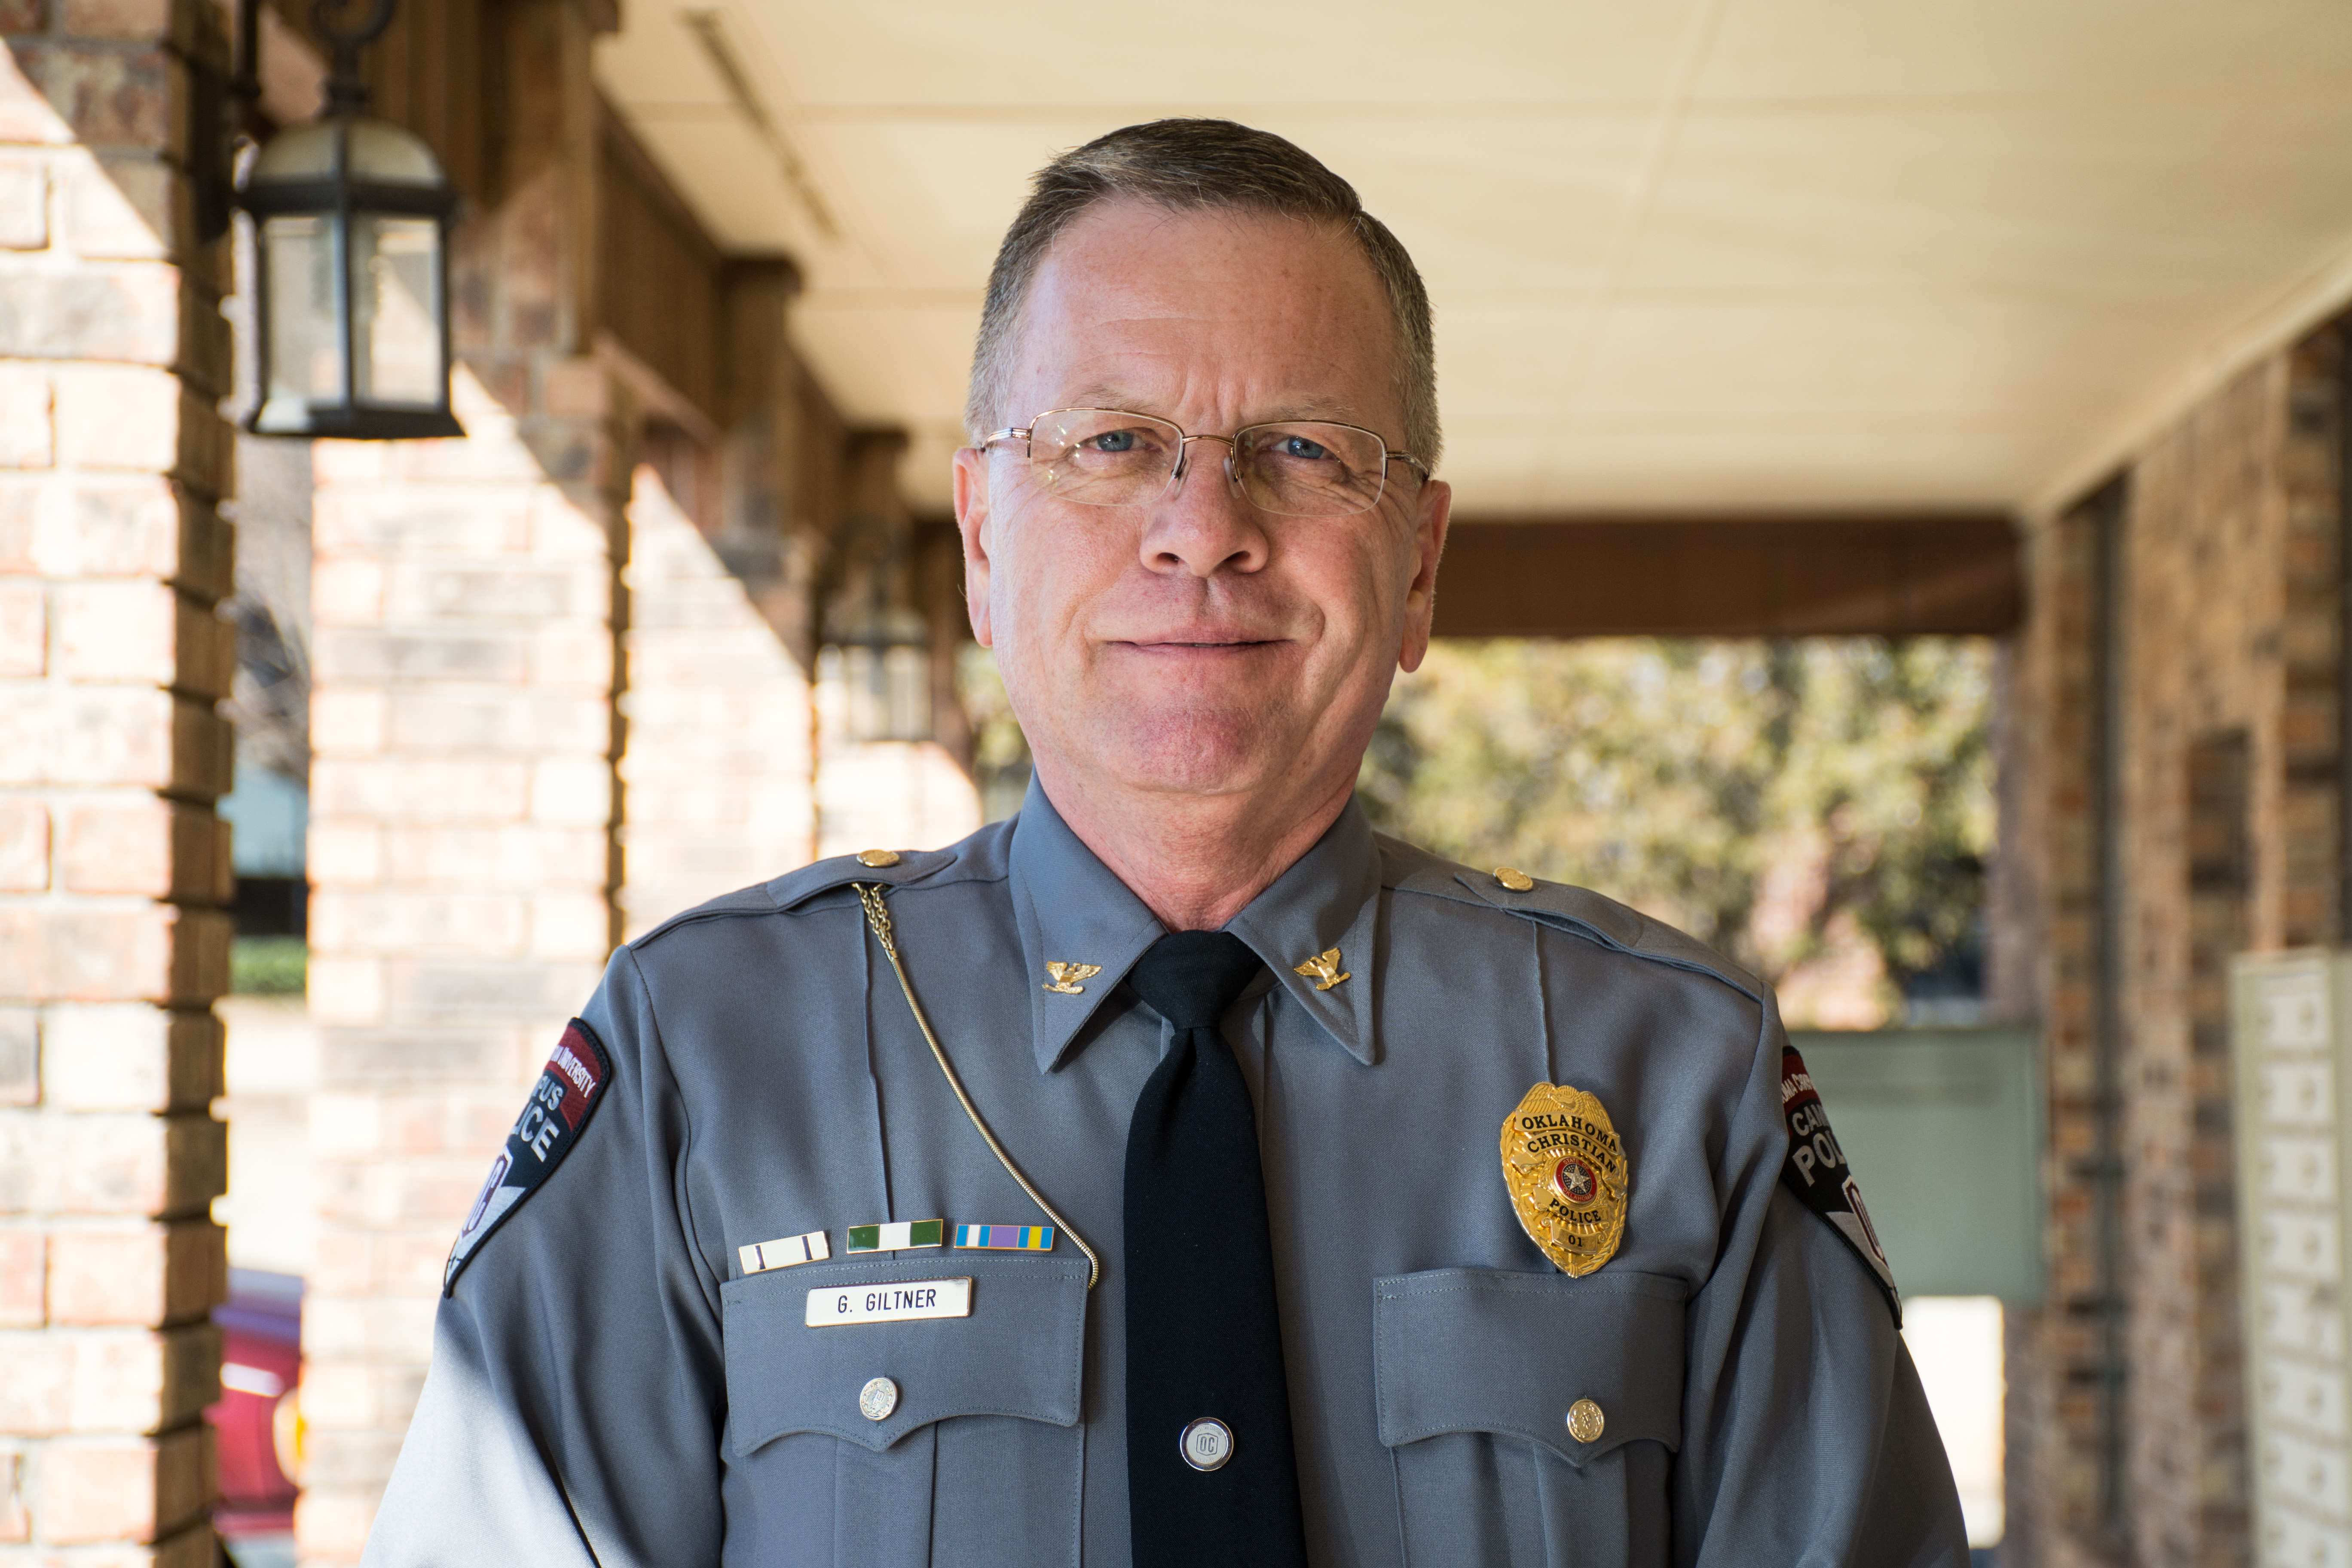 Greg Giltner began his job as the new Oklahoma Christian University police chief in October 2015. Photo by Abby Bellow.